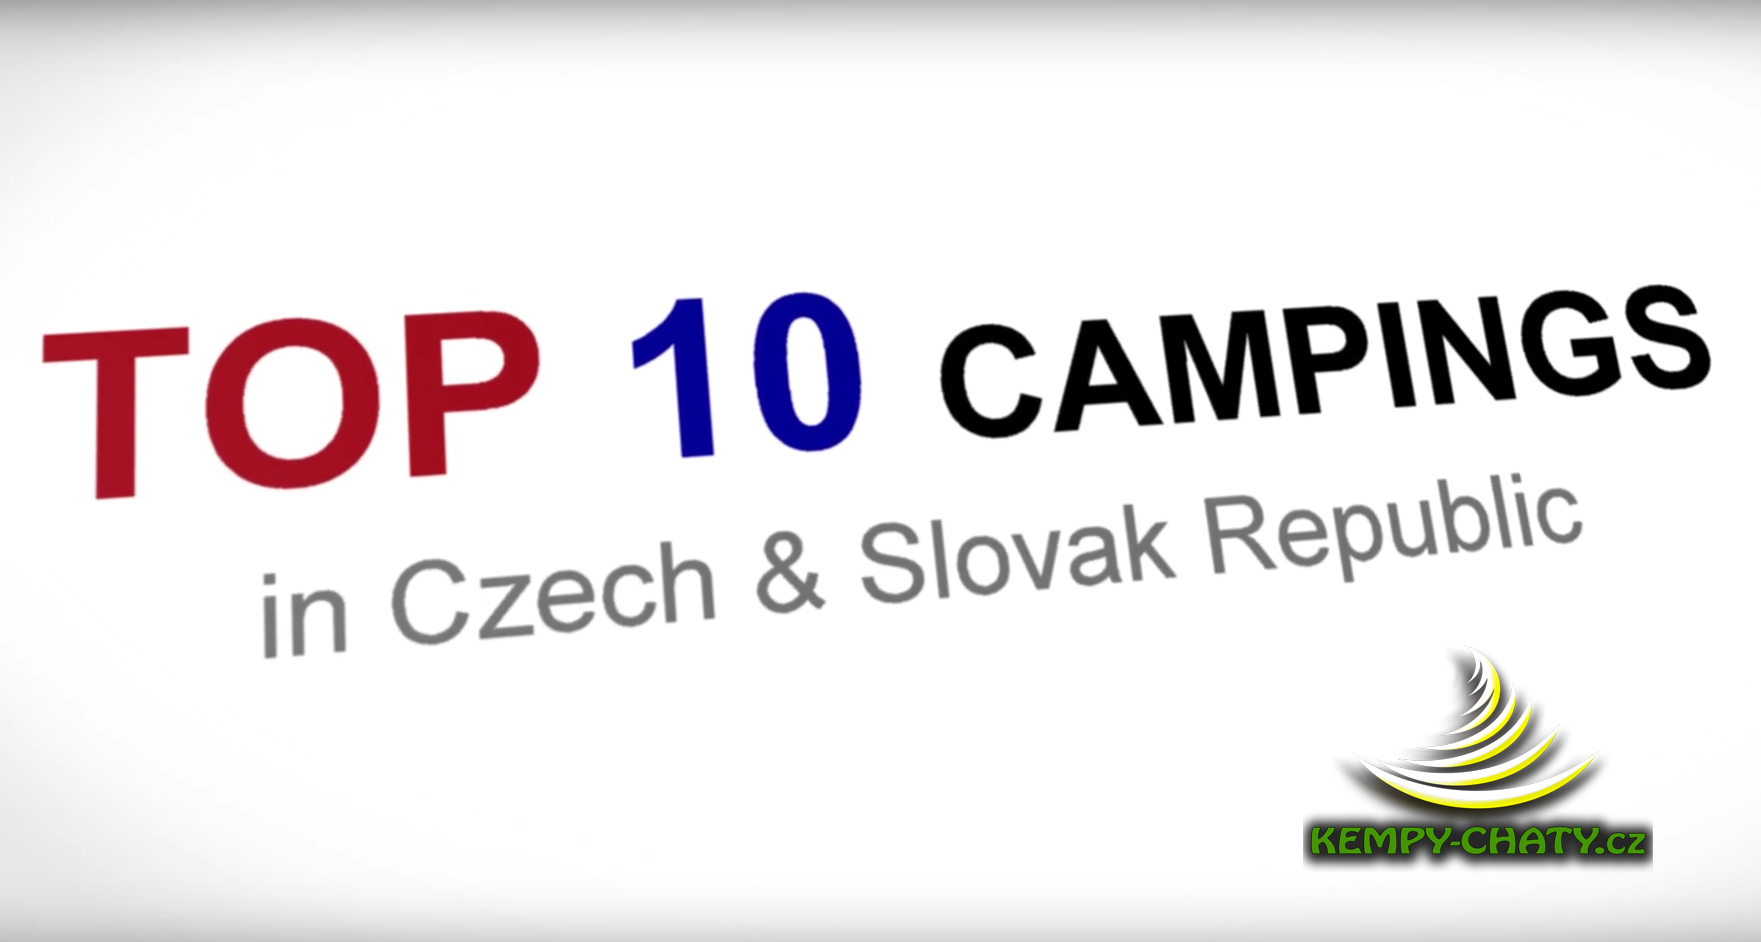 https://www.kempy-chaty.cz/sites/default/files/novinky/top_10_czechoslovakia_camping_full.png